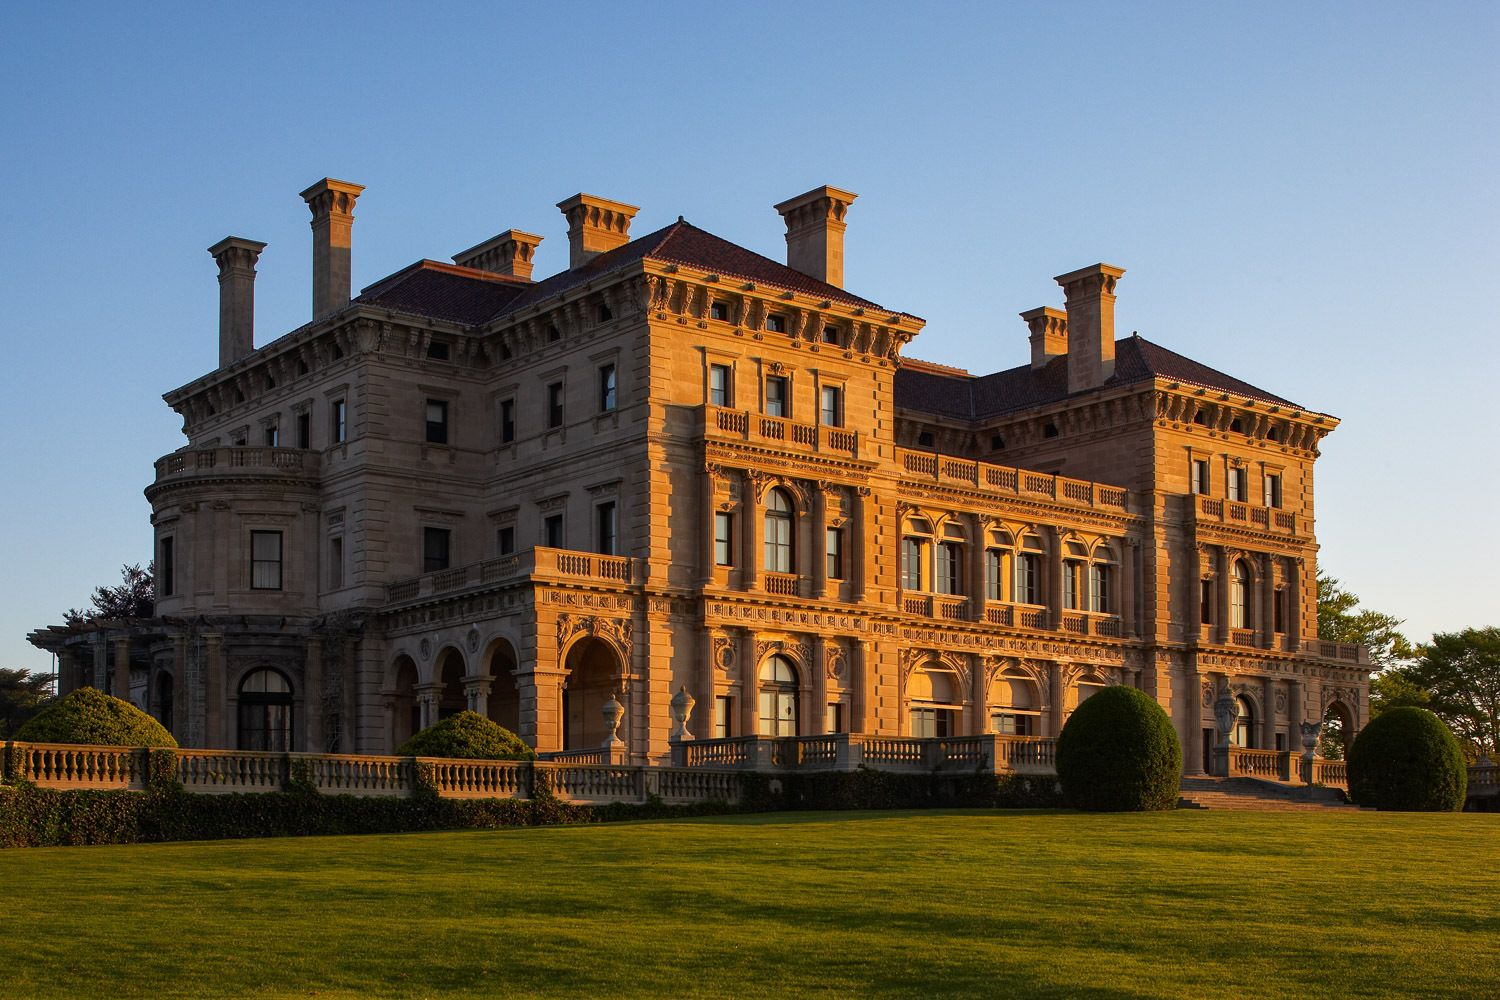 The Breakers, was built by Cornelius Vanderbilt II who was President of the New York Central Railroad system.